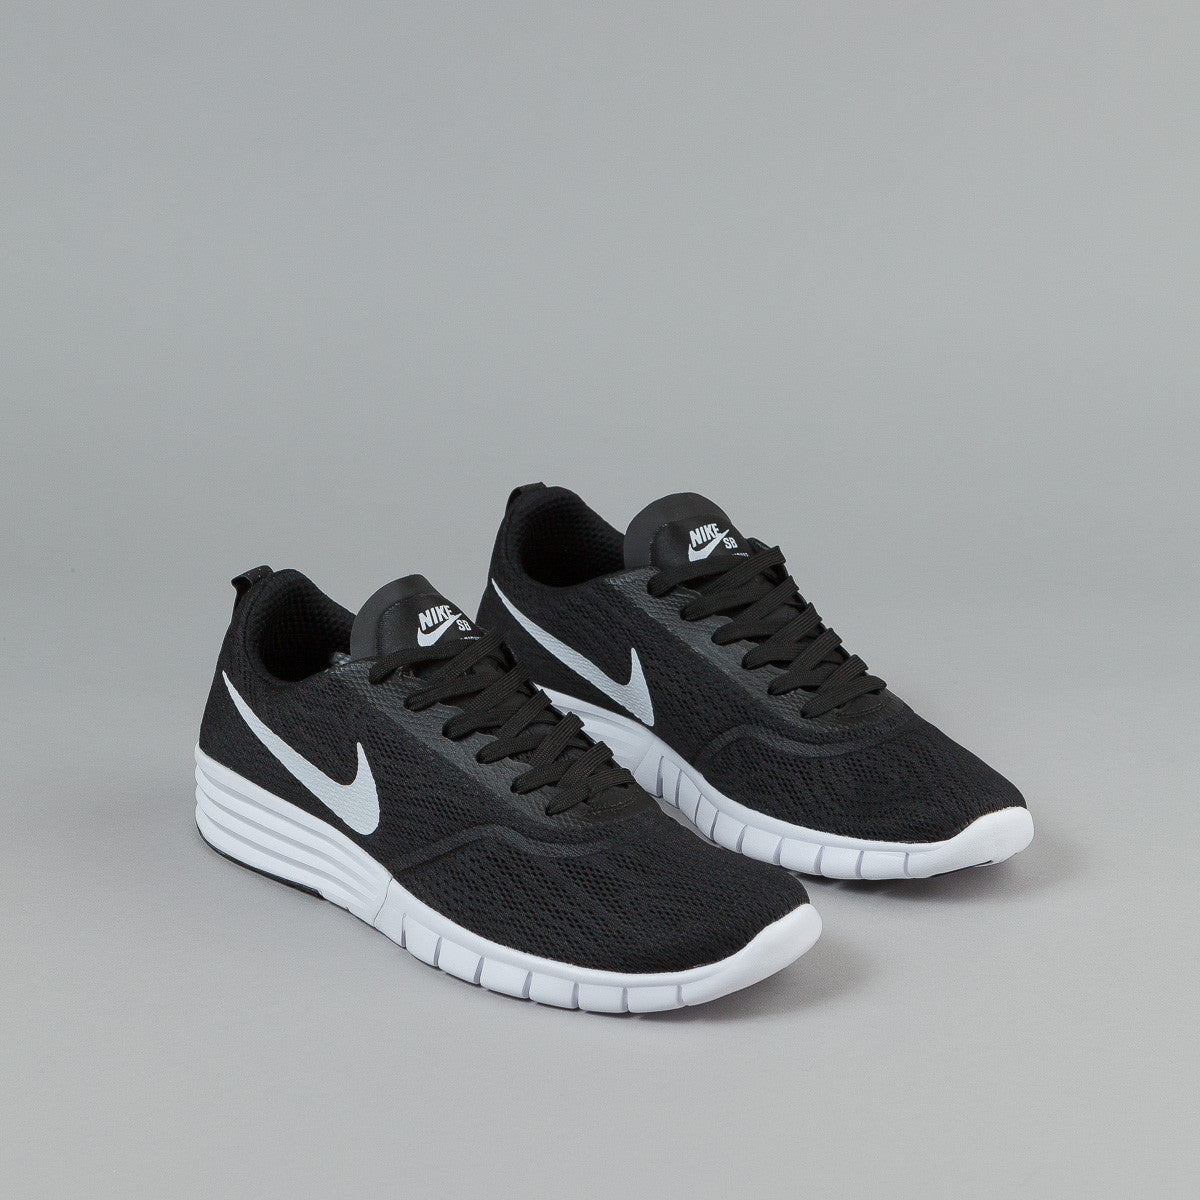 Nike SB Paul Rodriguez 9 R/R Shoes - Black / White - Black